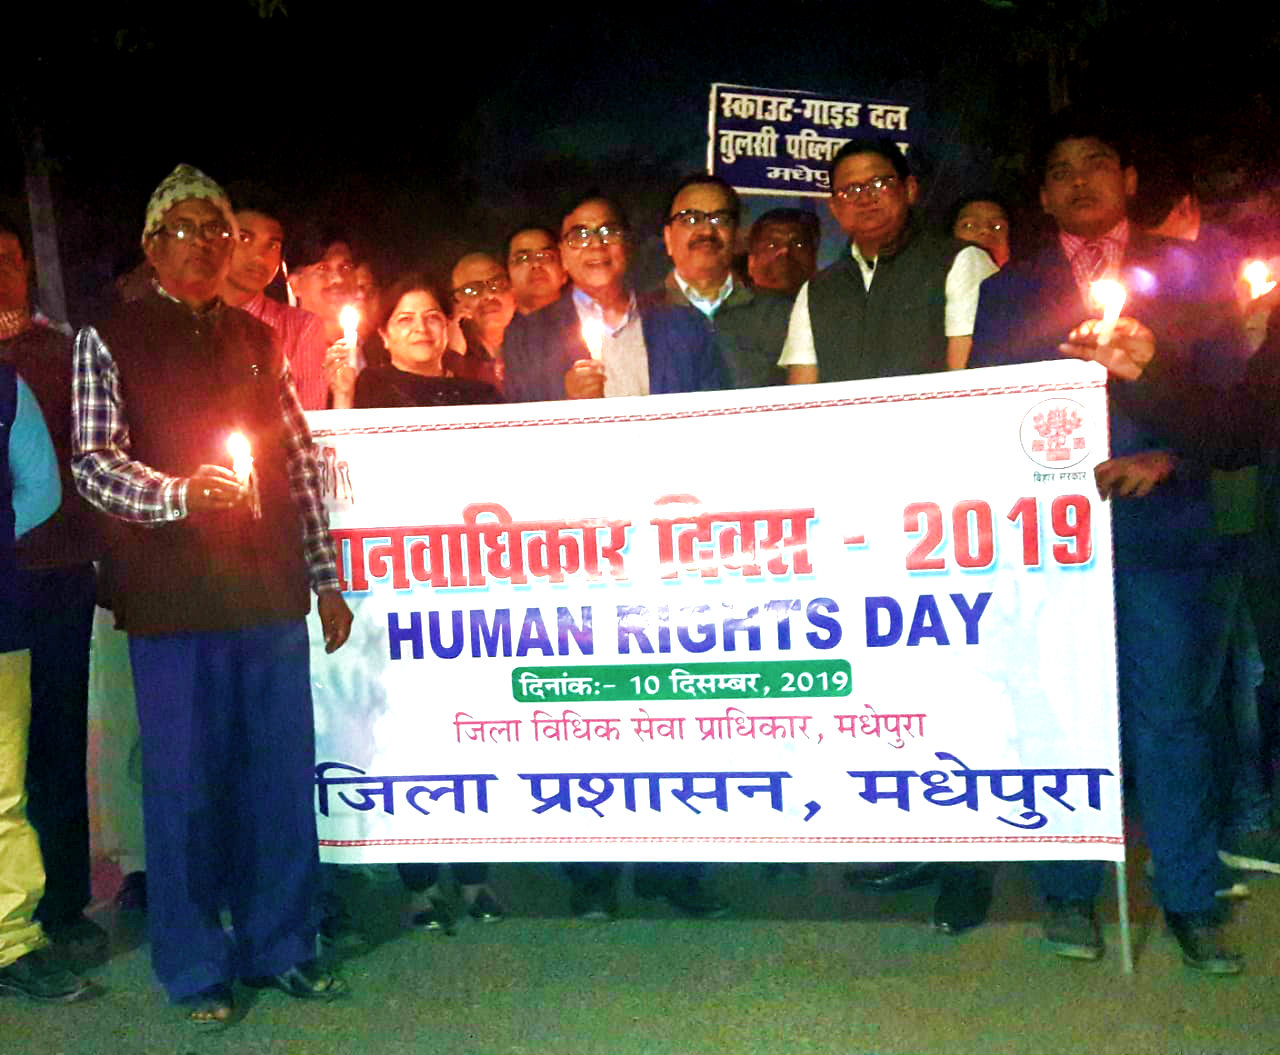 Dr.Madhepuri, ADM Upendra Kumar, ADM Shiv Kumar Shaiv, Dr.Hema, Jai Kishan Prasad Yadav & others attening Candle March organised by District Administration on the occasion of International Human Rights Day.